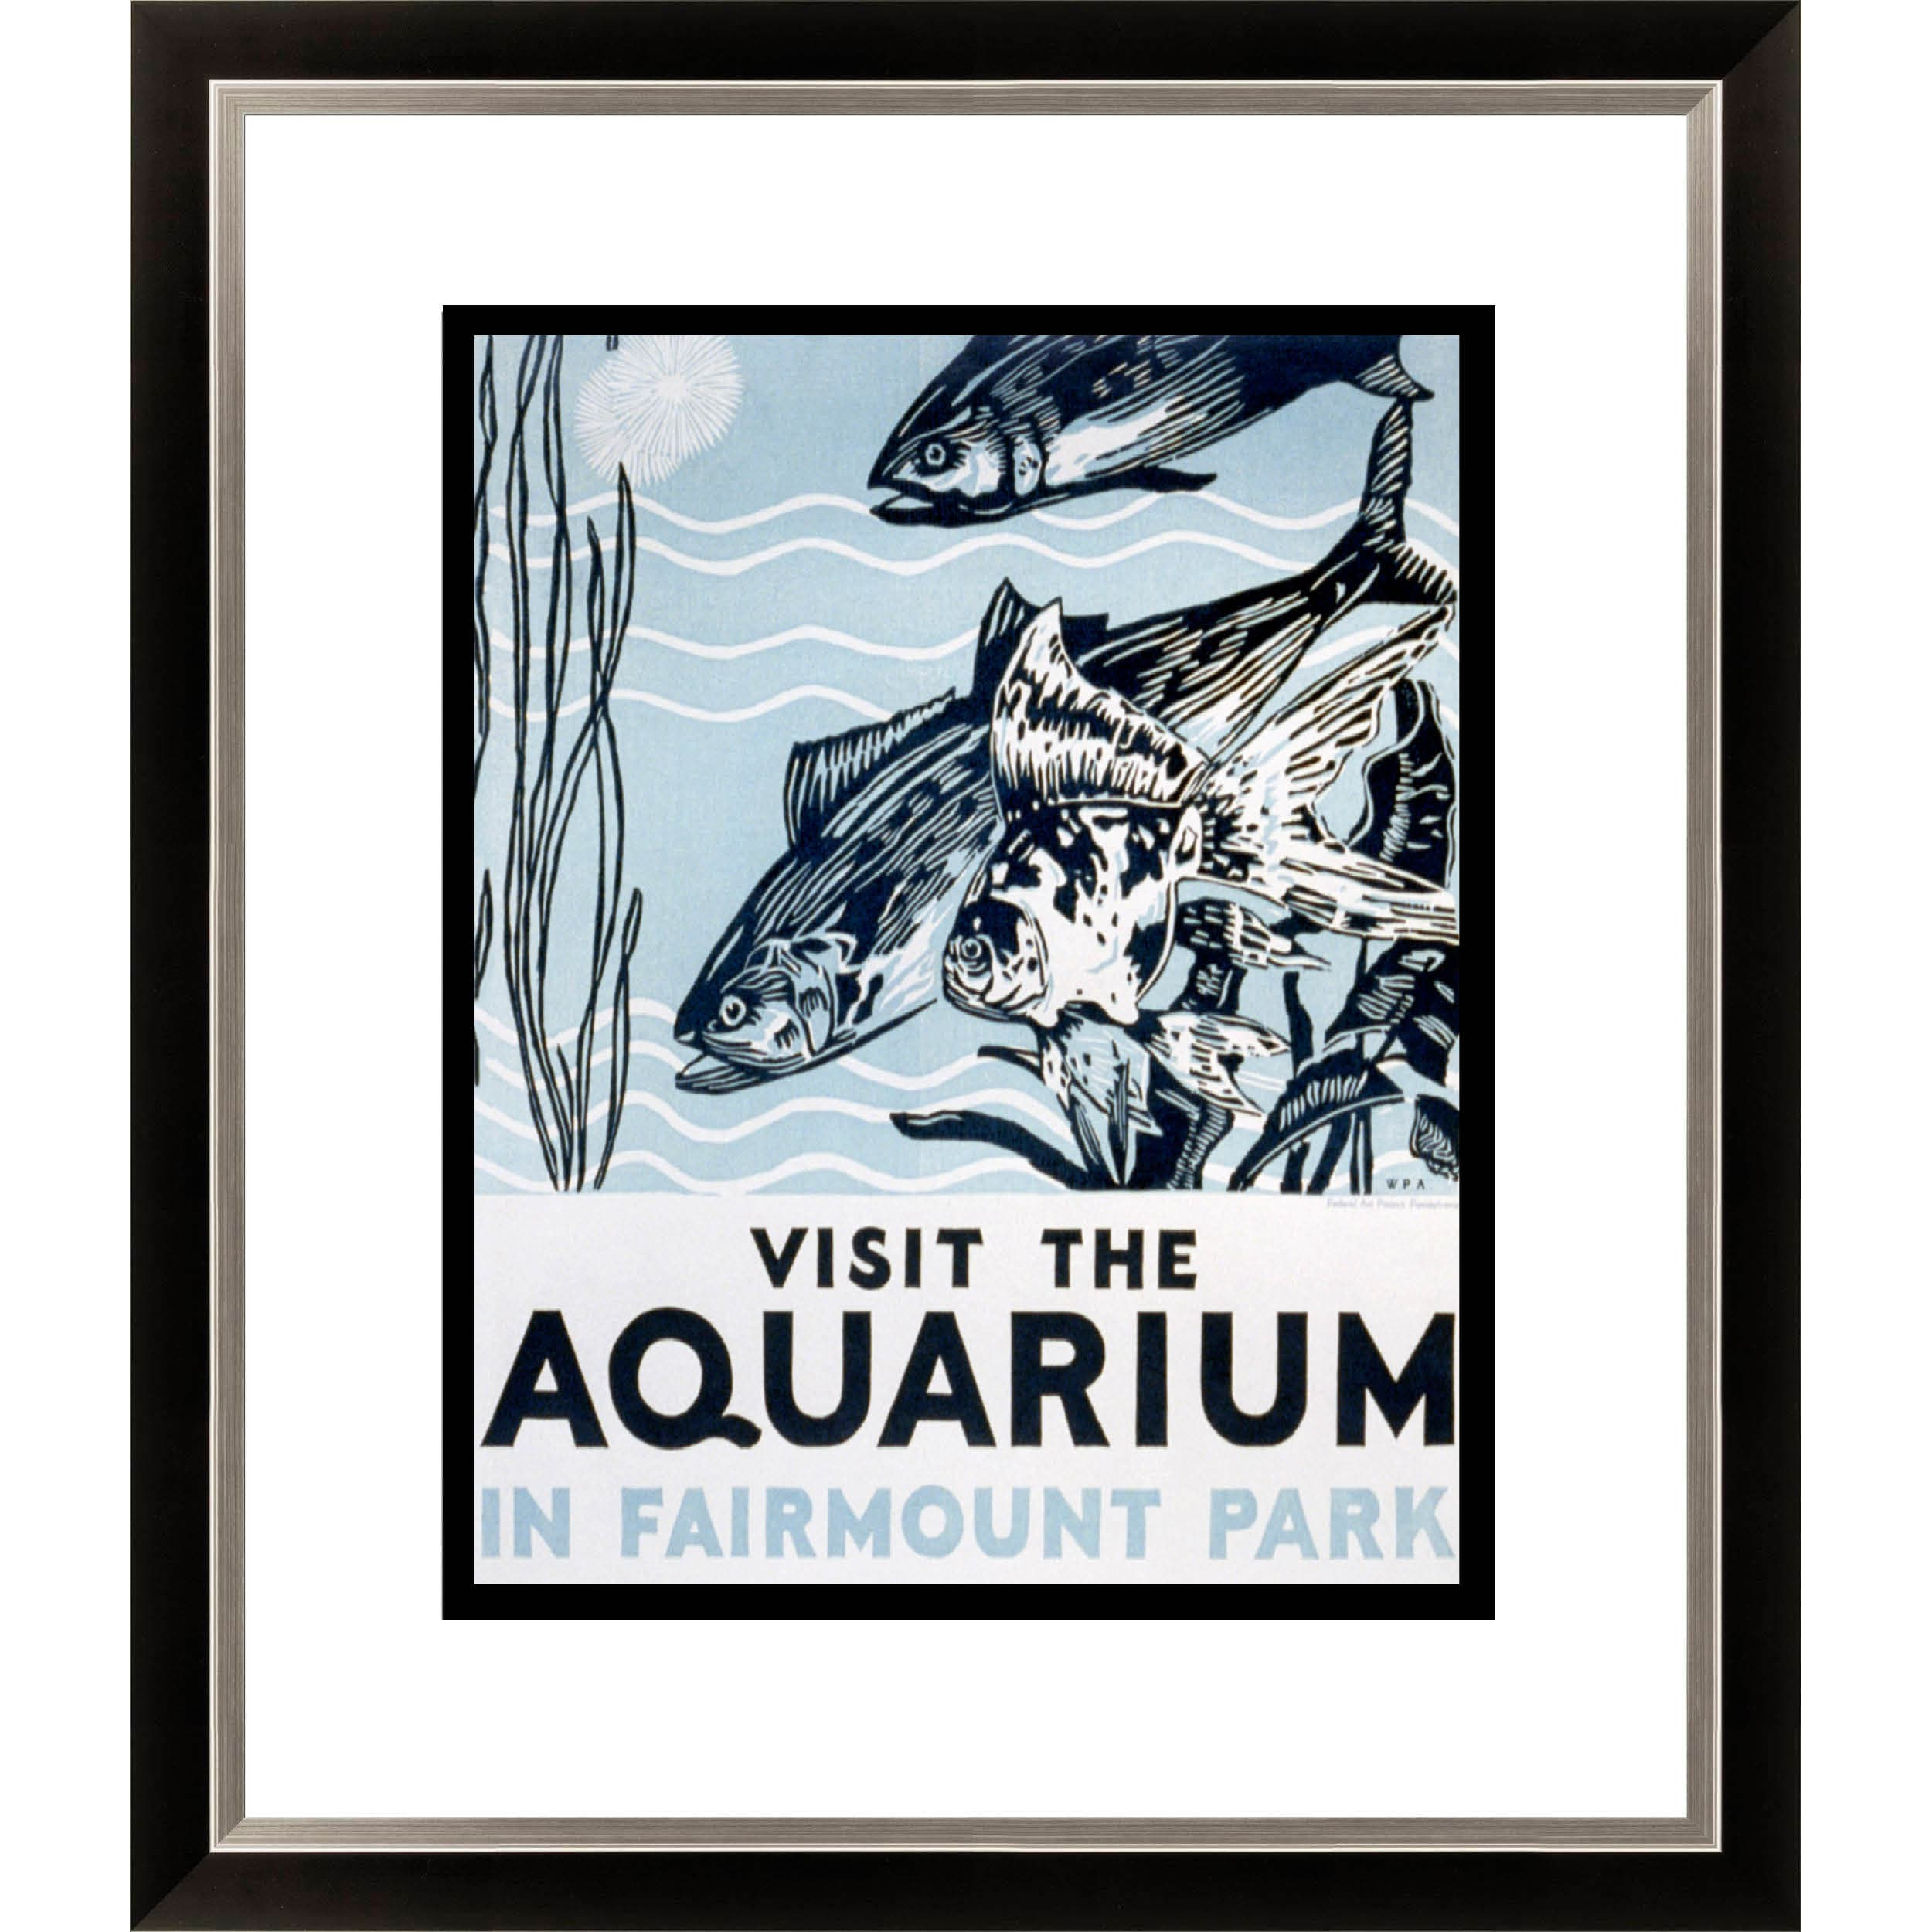 Gallery Direct 'Visit the Aquarium in Fairmount Park' Framed Limited Edition Giclee